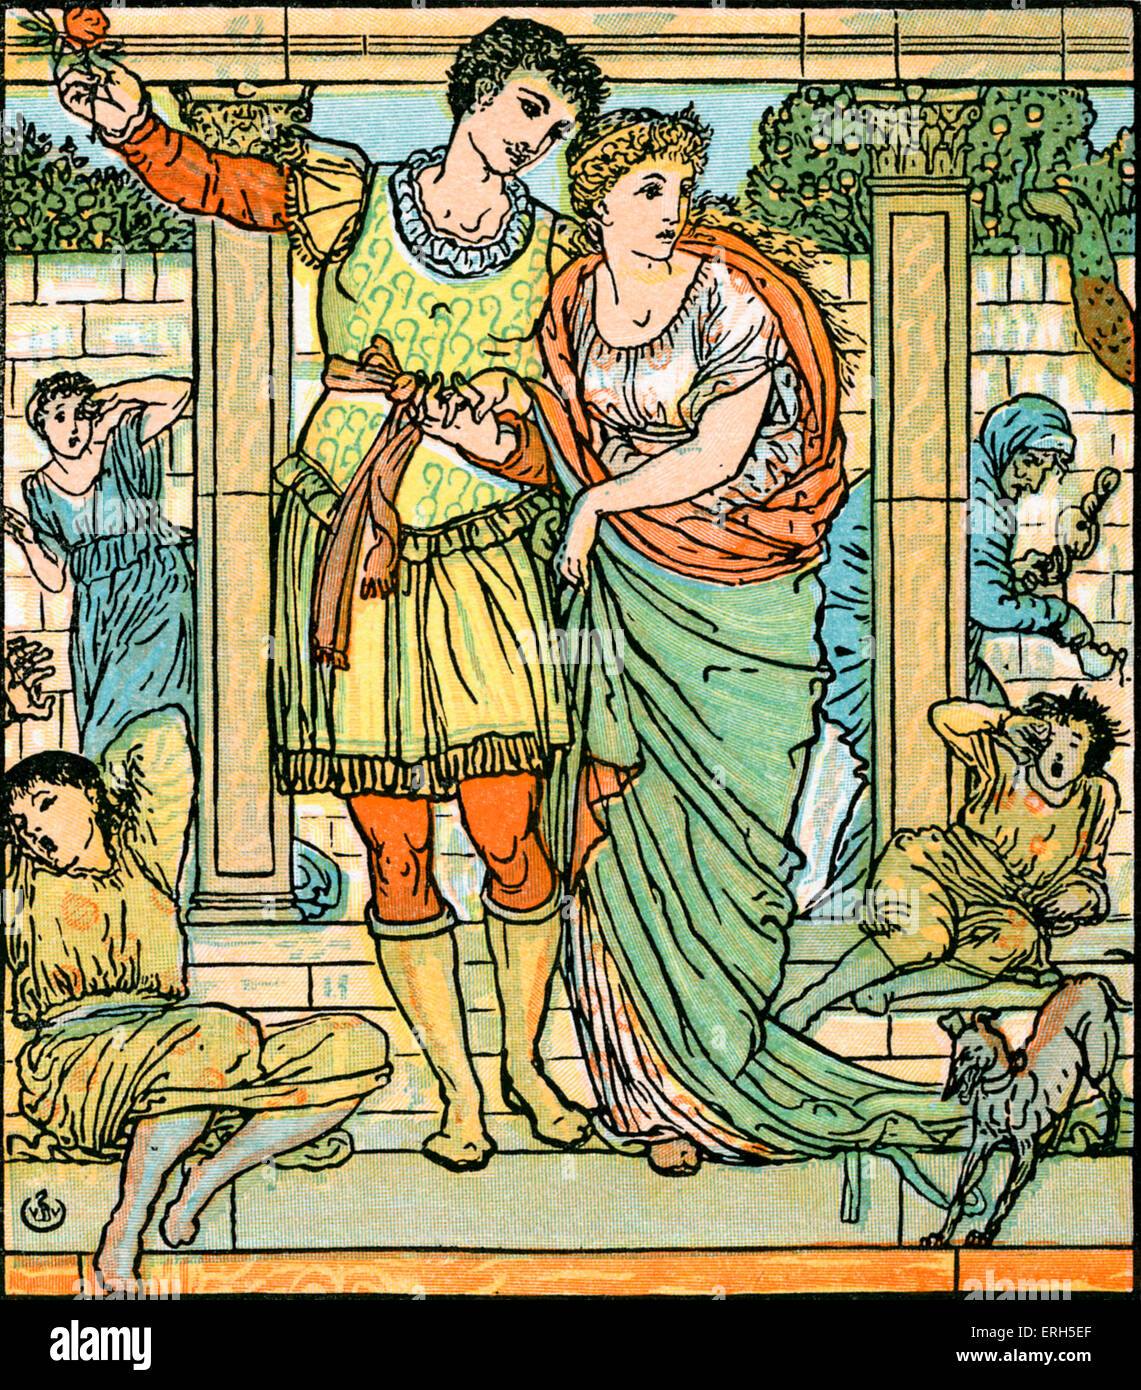 Sleeping Beauty written and illustrated by Walter Crane and published in 1914. The scene depicts the Prince leading - Stock Image